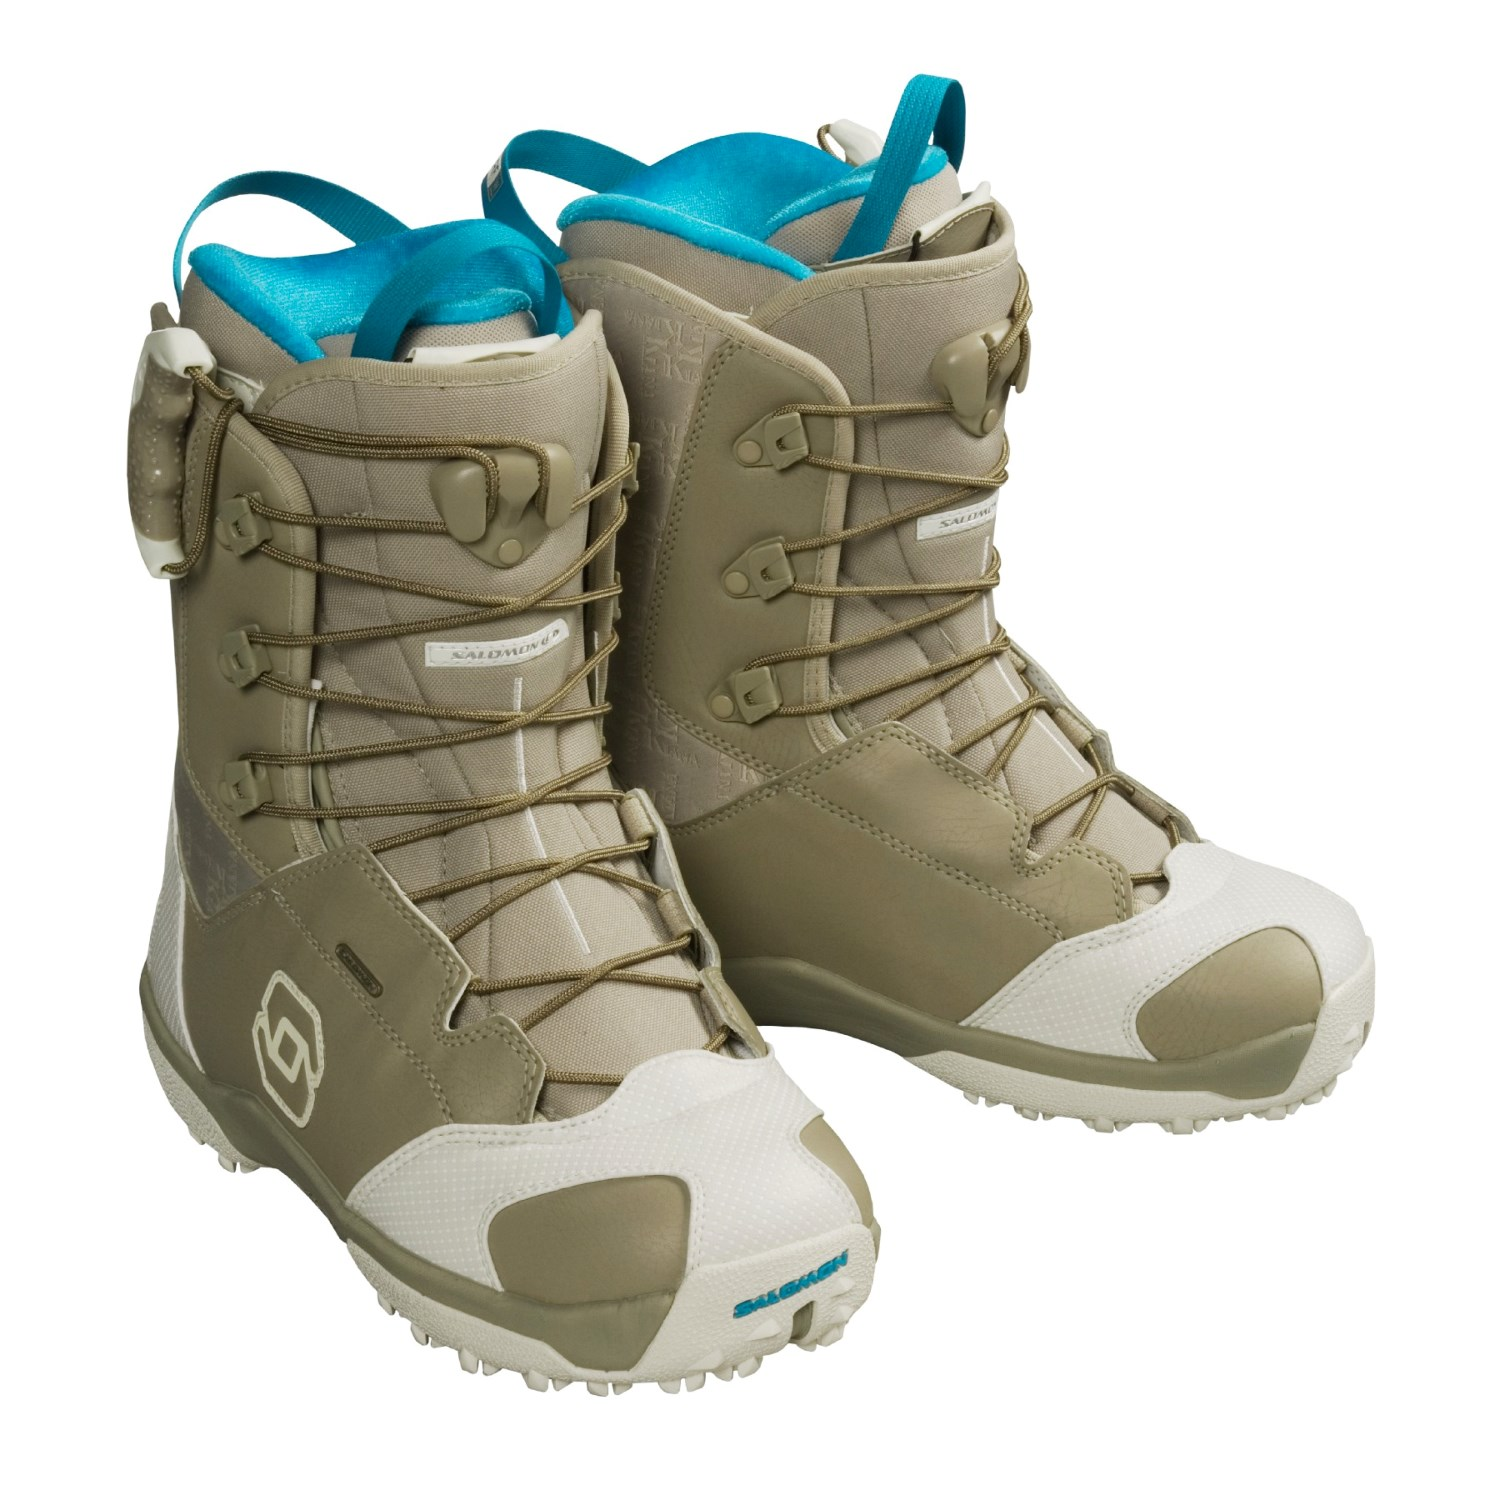 Boots Pearl ReviewBeckychain Redwood Salomon Snowboard Reaction VpMGSzqU